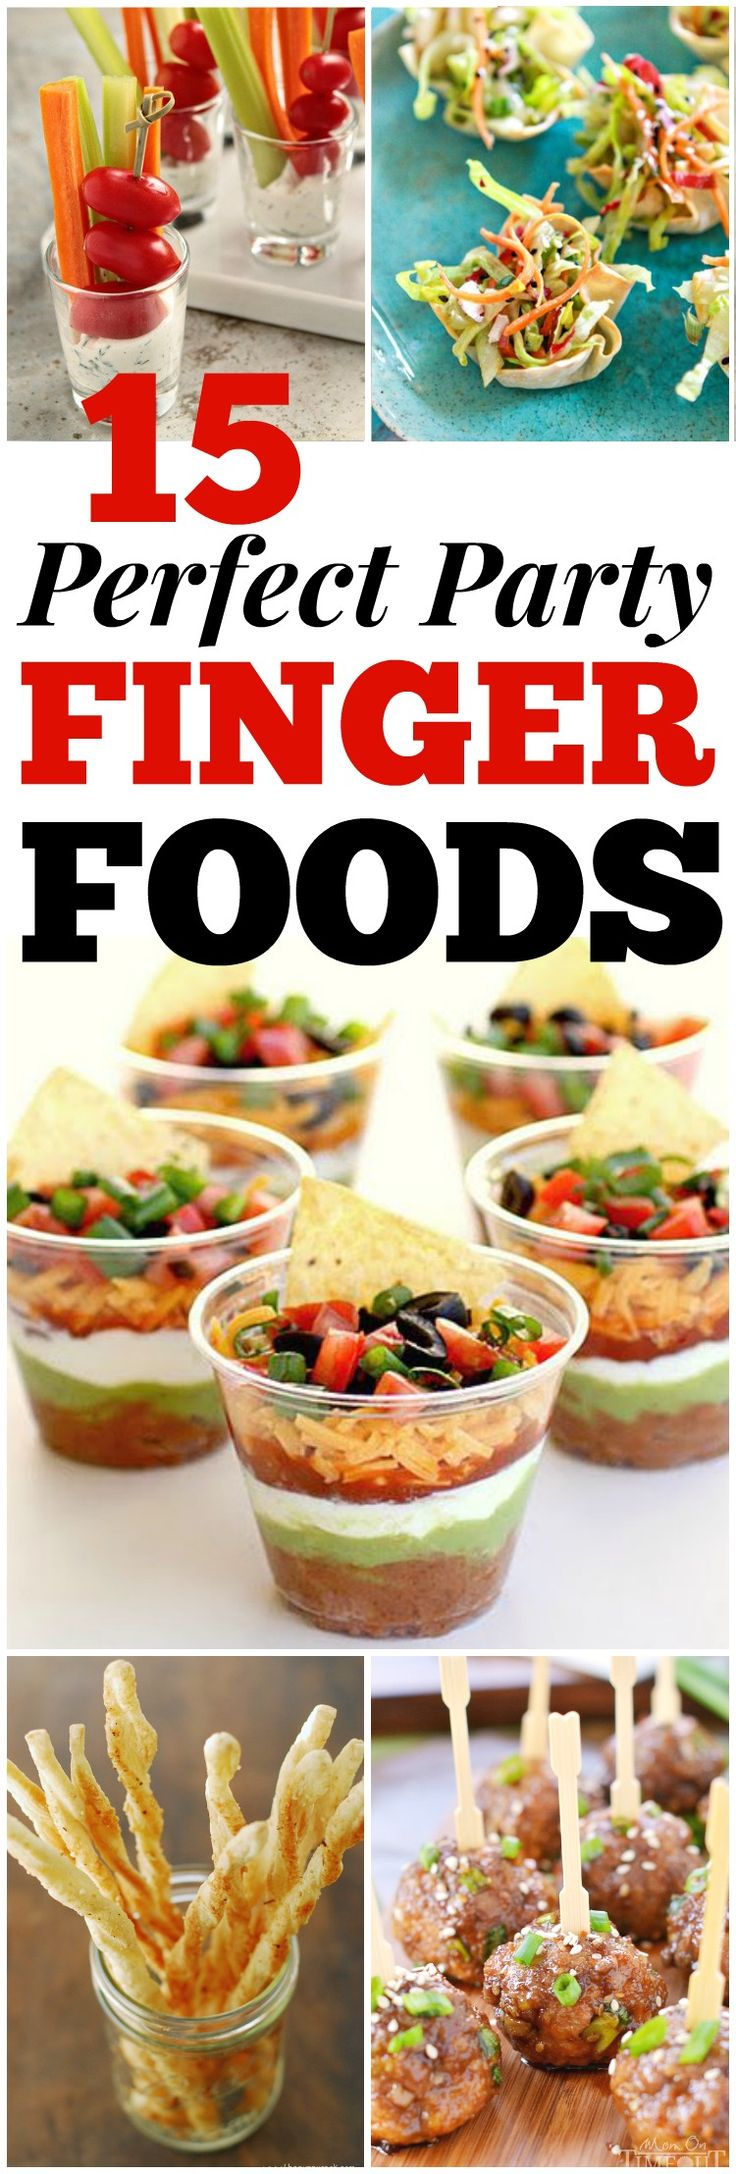 Looking for good hosting recipes? These easy party finger food recipes include entrees, appetizers, sides and desserts to impress your friends and family!